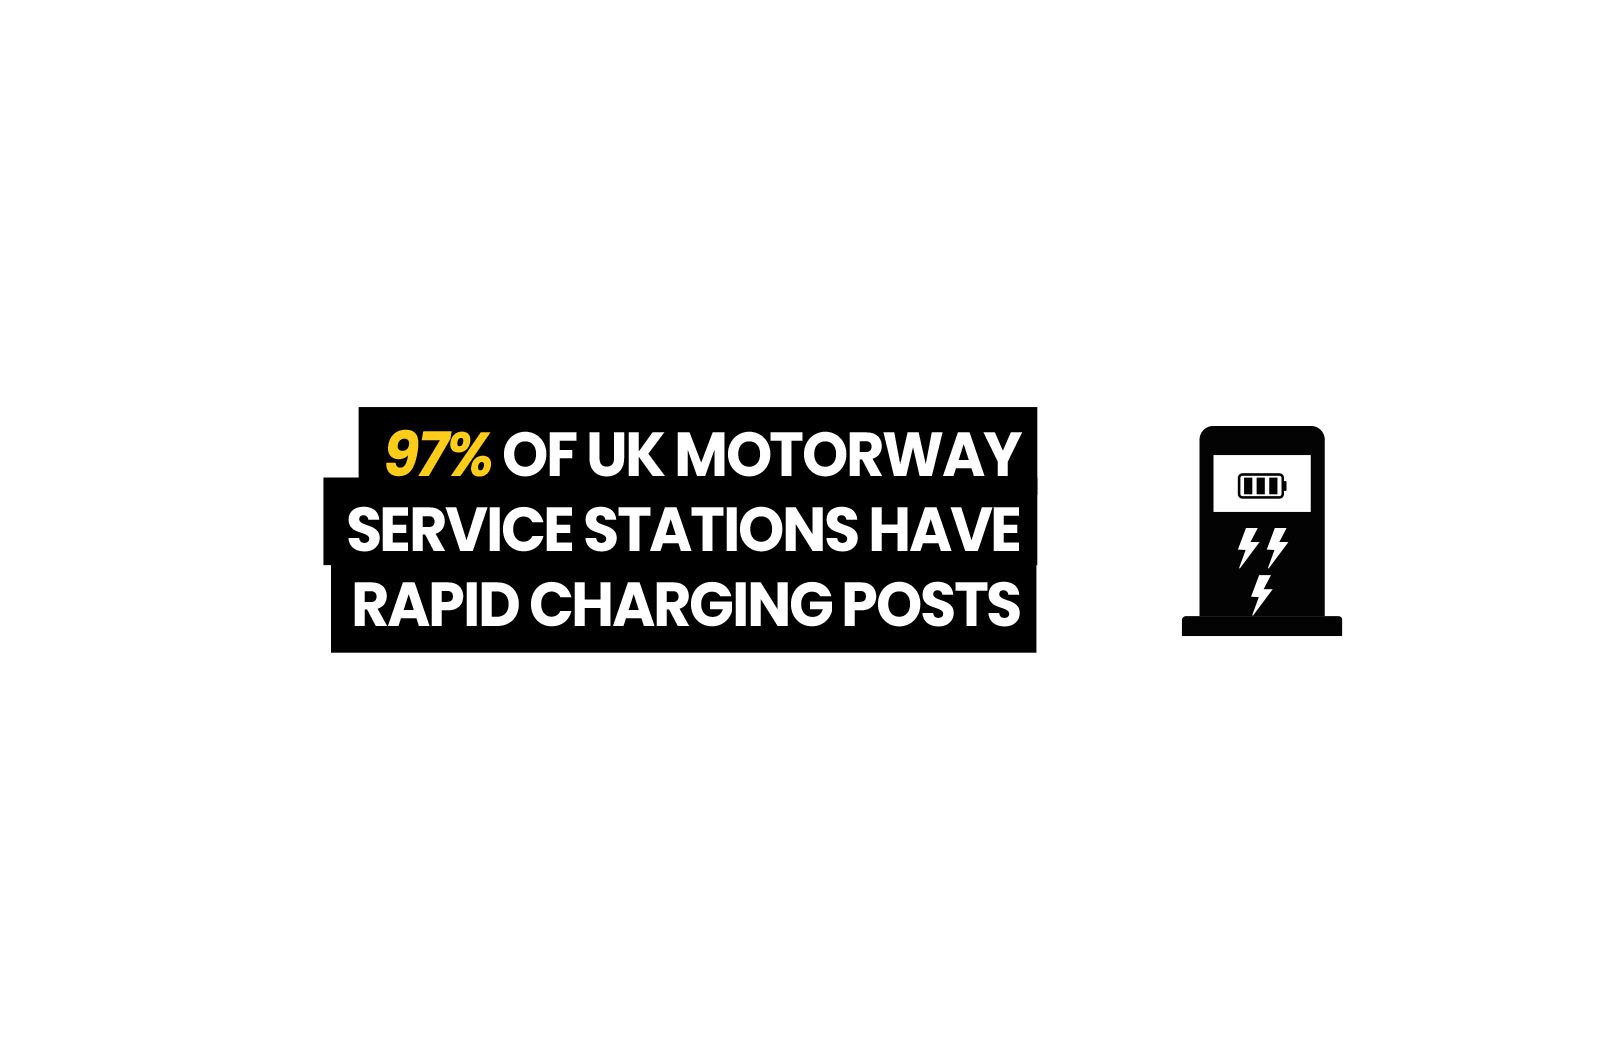 Rapid charging stats